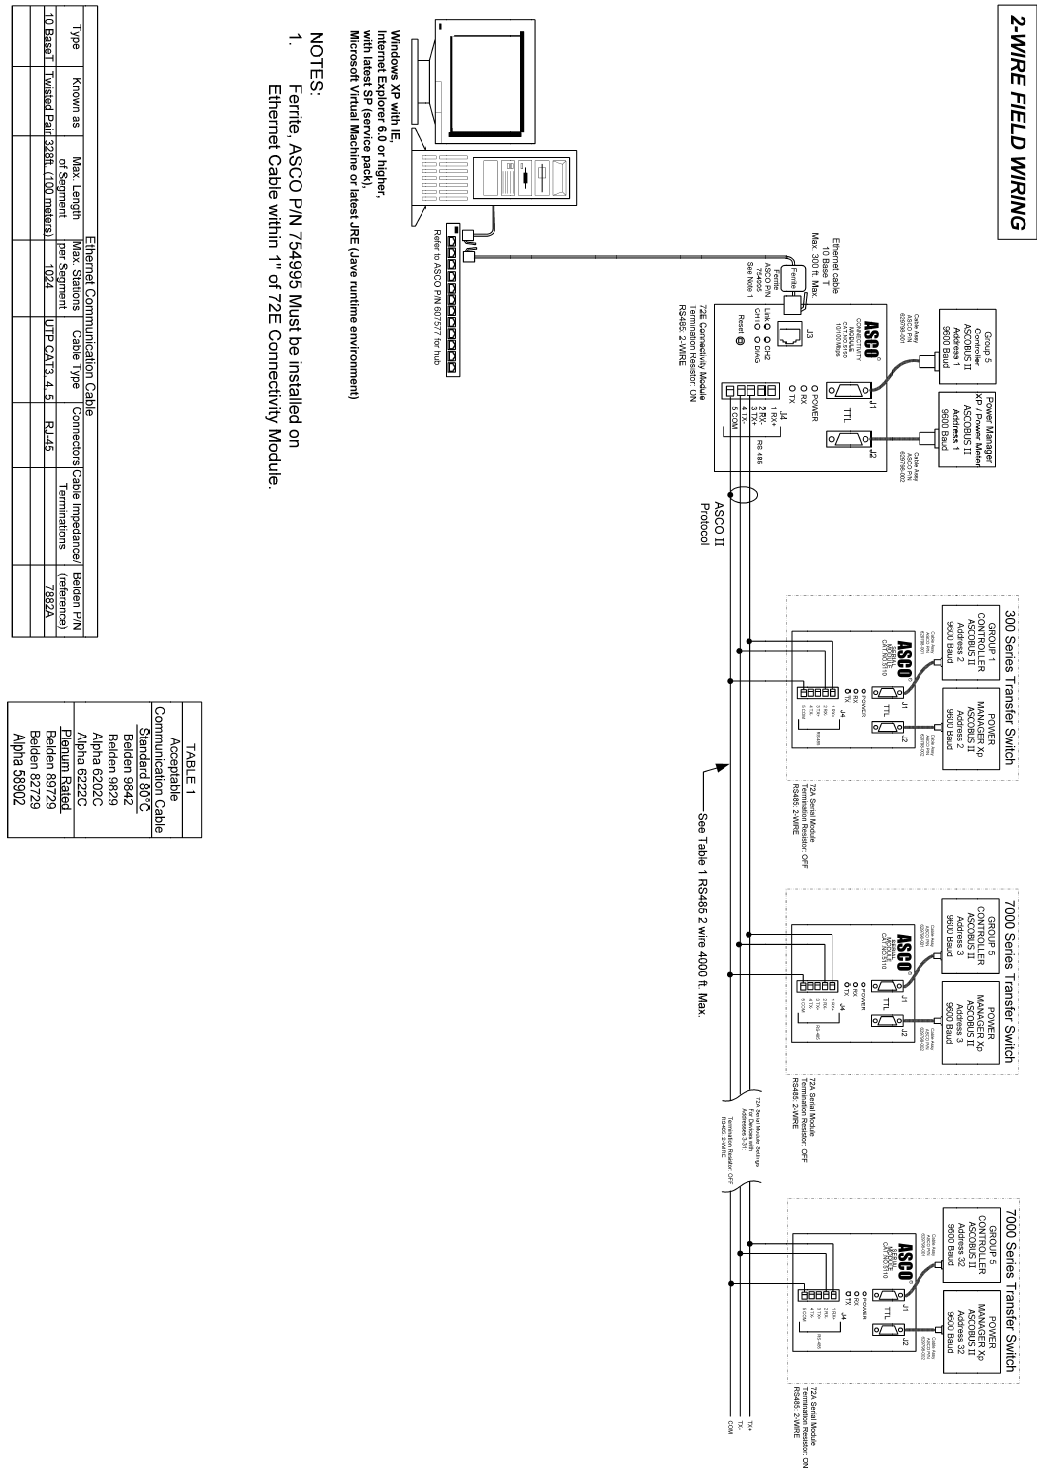 Emerson 5150 Users Manual Installation For Asco Catalog Connectivity Rs 485 Diagram 2wire Module Wiring Diagrams Viii